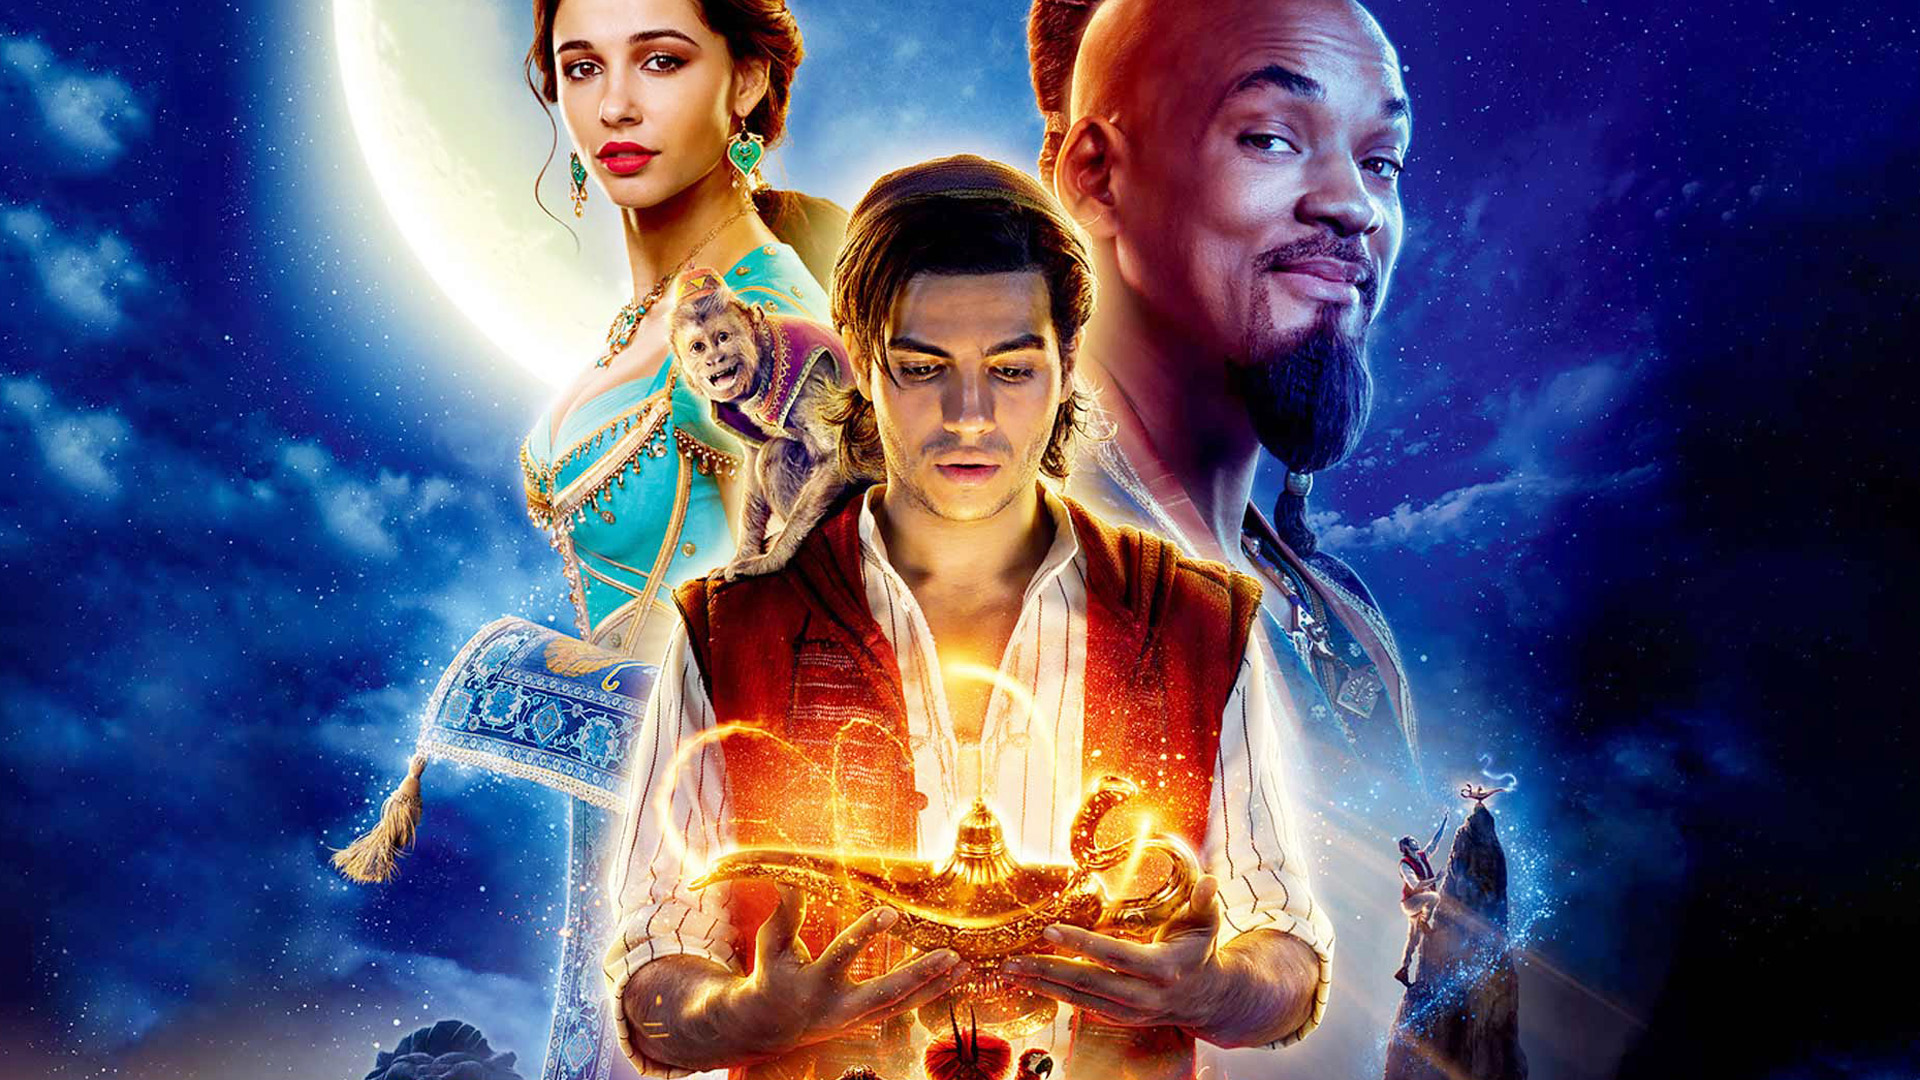 Movie Poster 2019: Aladdin (2019) Movie Reviews